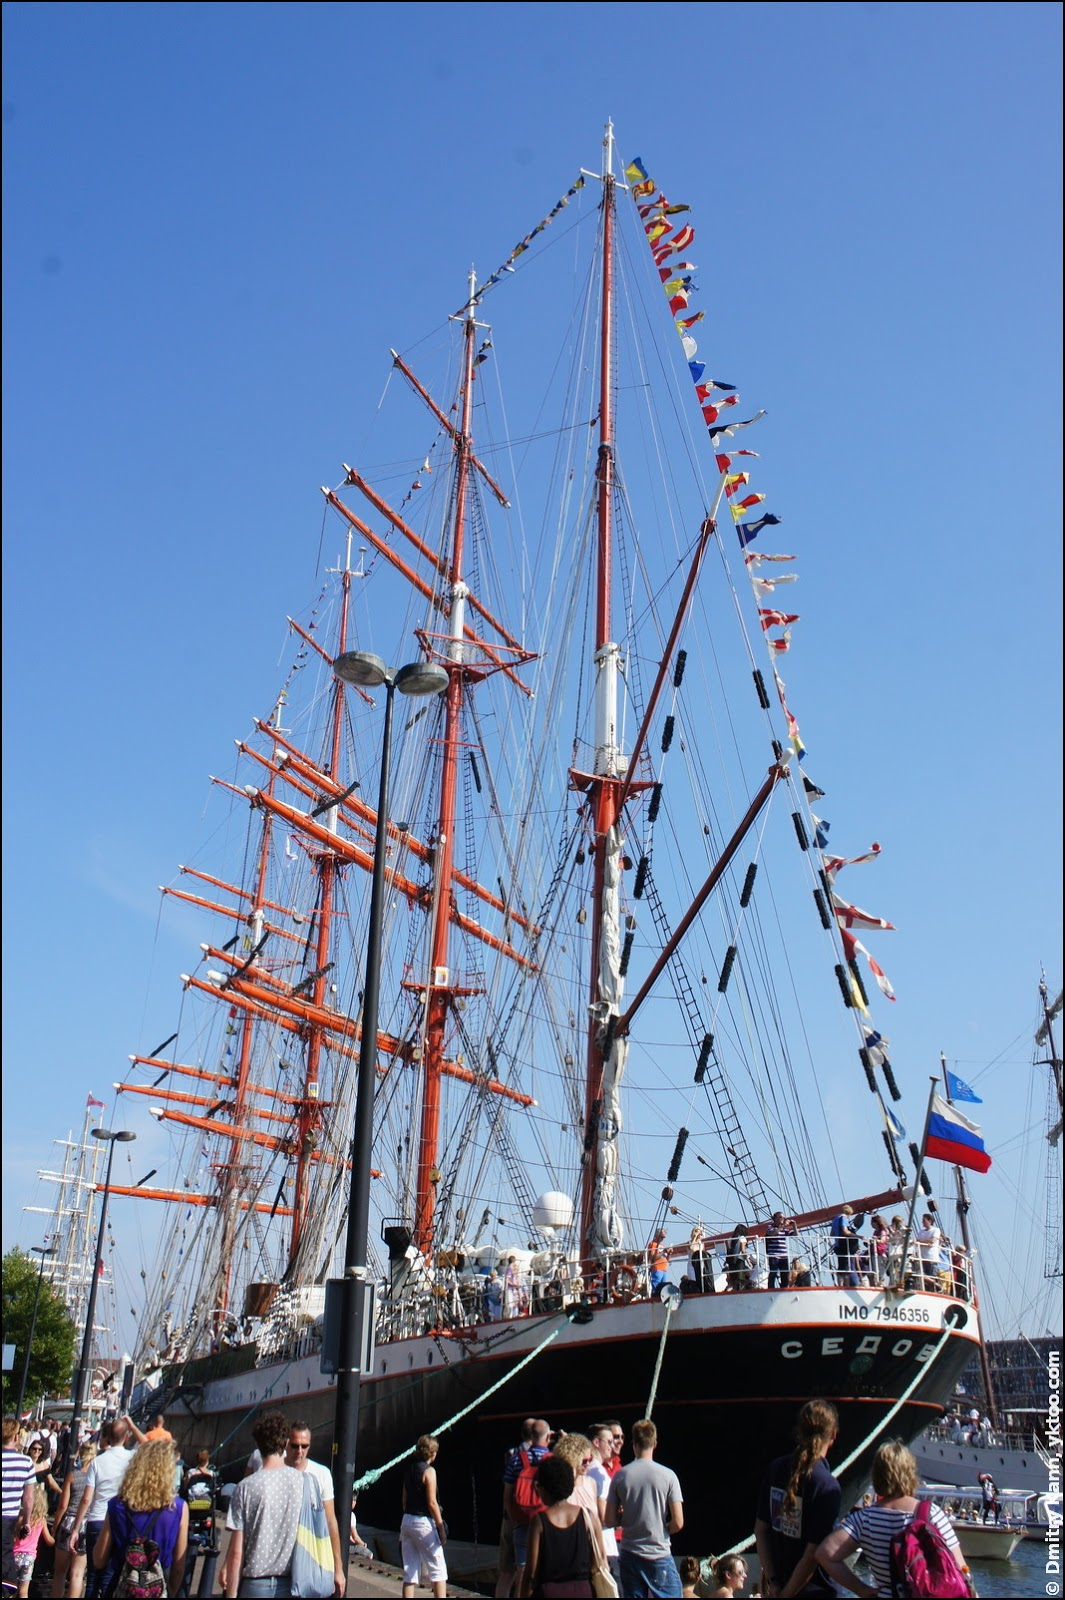 The Sedov.